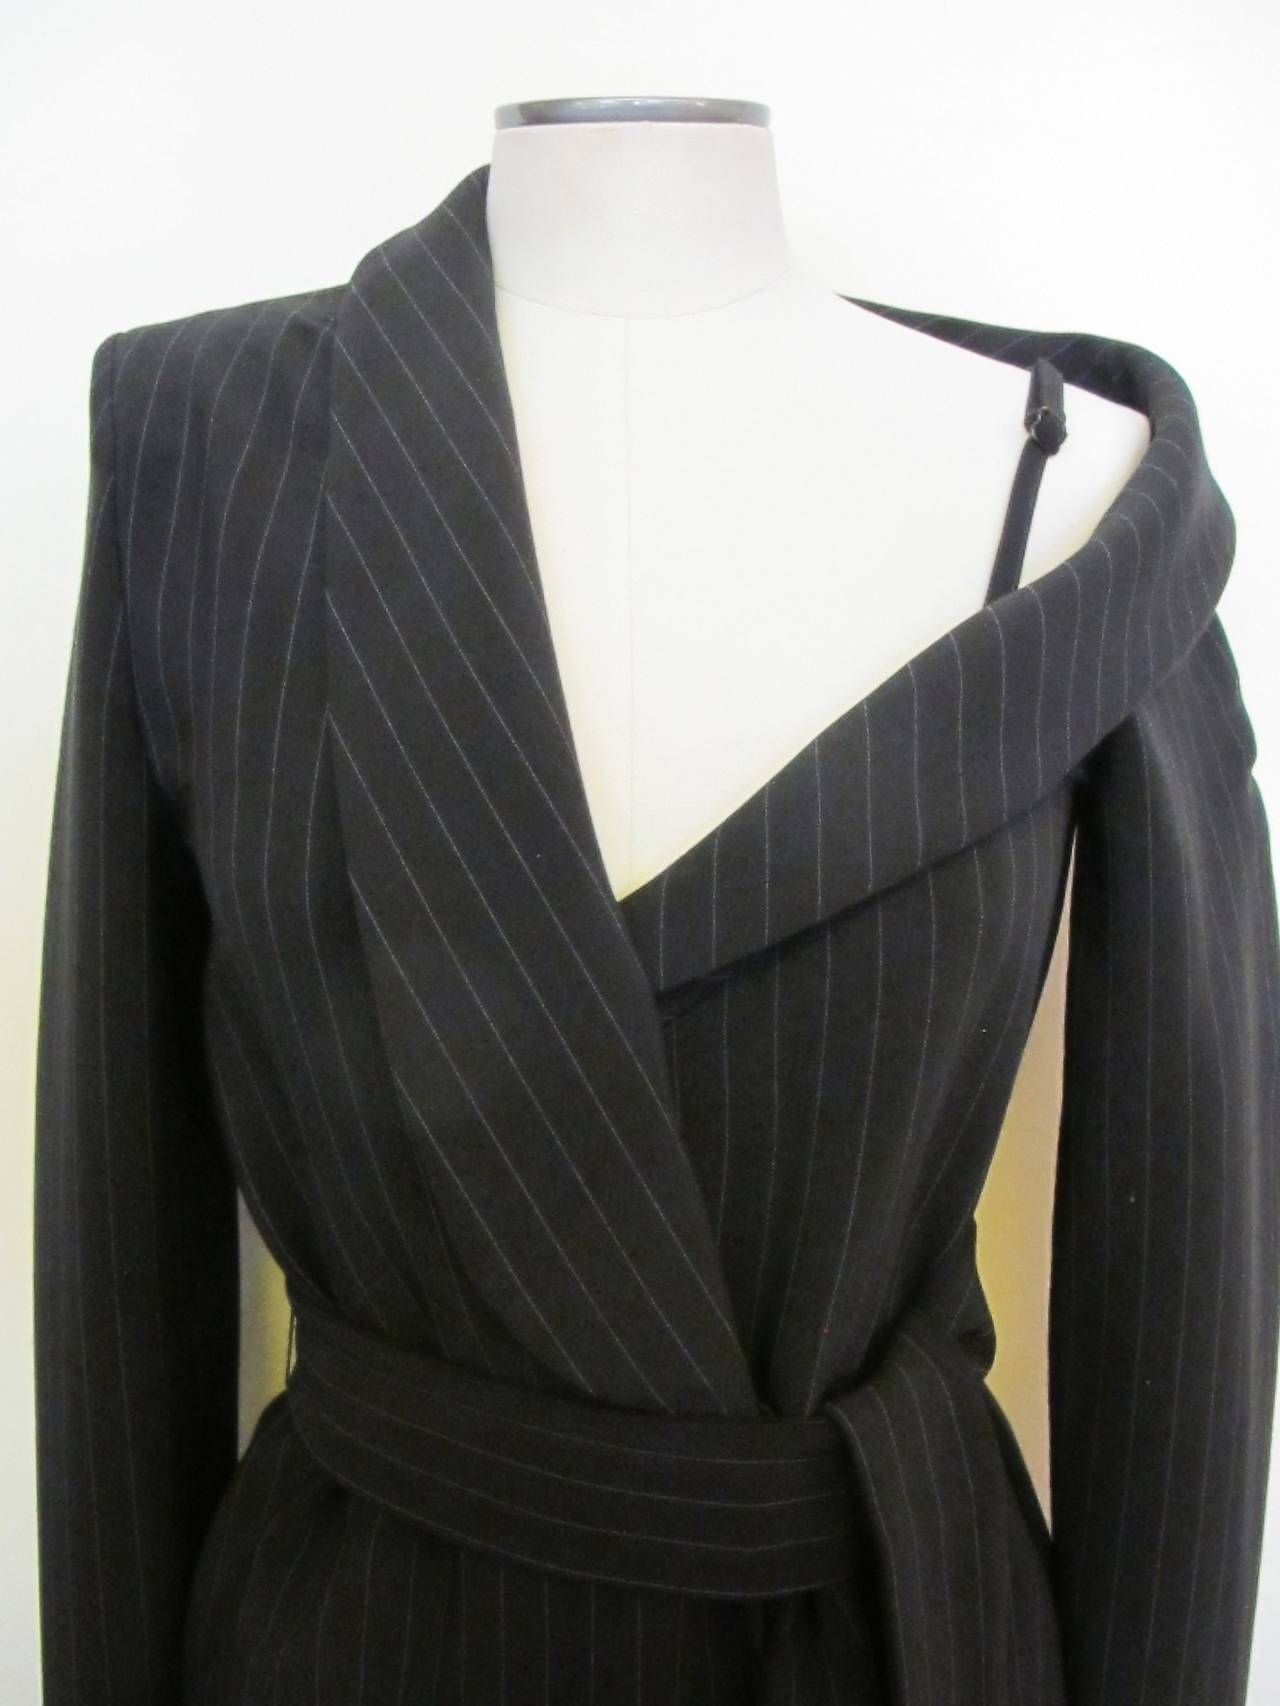 Asymmetrical Jean Paul Gaultier Pinstripe Dress   From a collection of rare vintage day dresses at https://www.1stdibs.com/fashion/clothing/day-dresses/